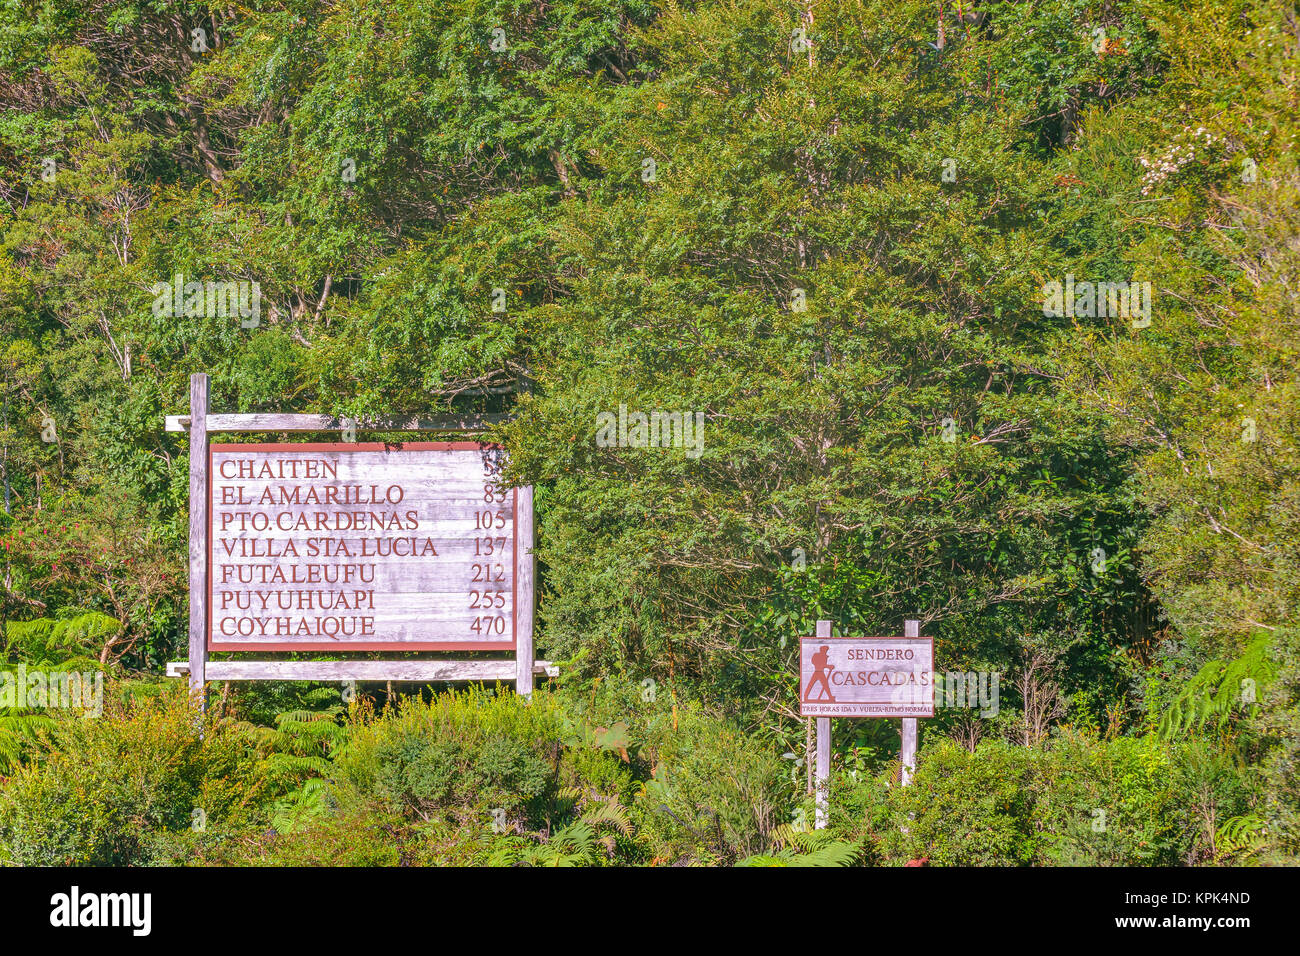 LOS LAGOS, CHILE, APRIL - 2017 - Travel information signpost at leafy forest in Caleta gonzalo, Chile - Stock Image